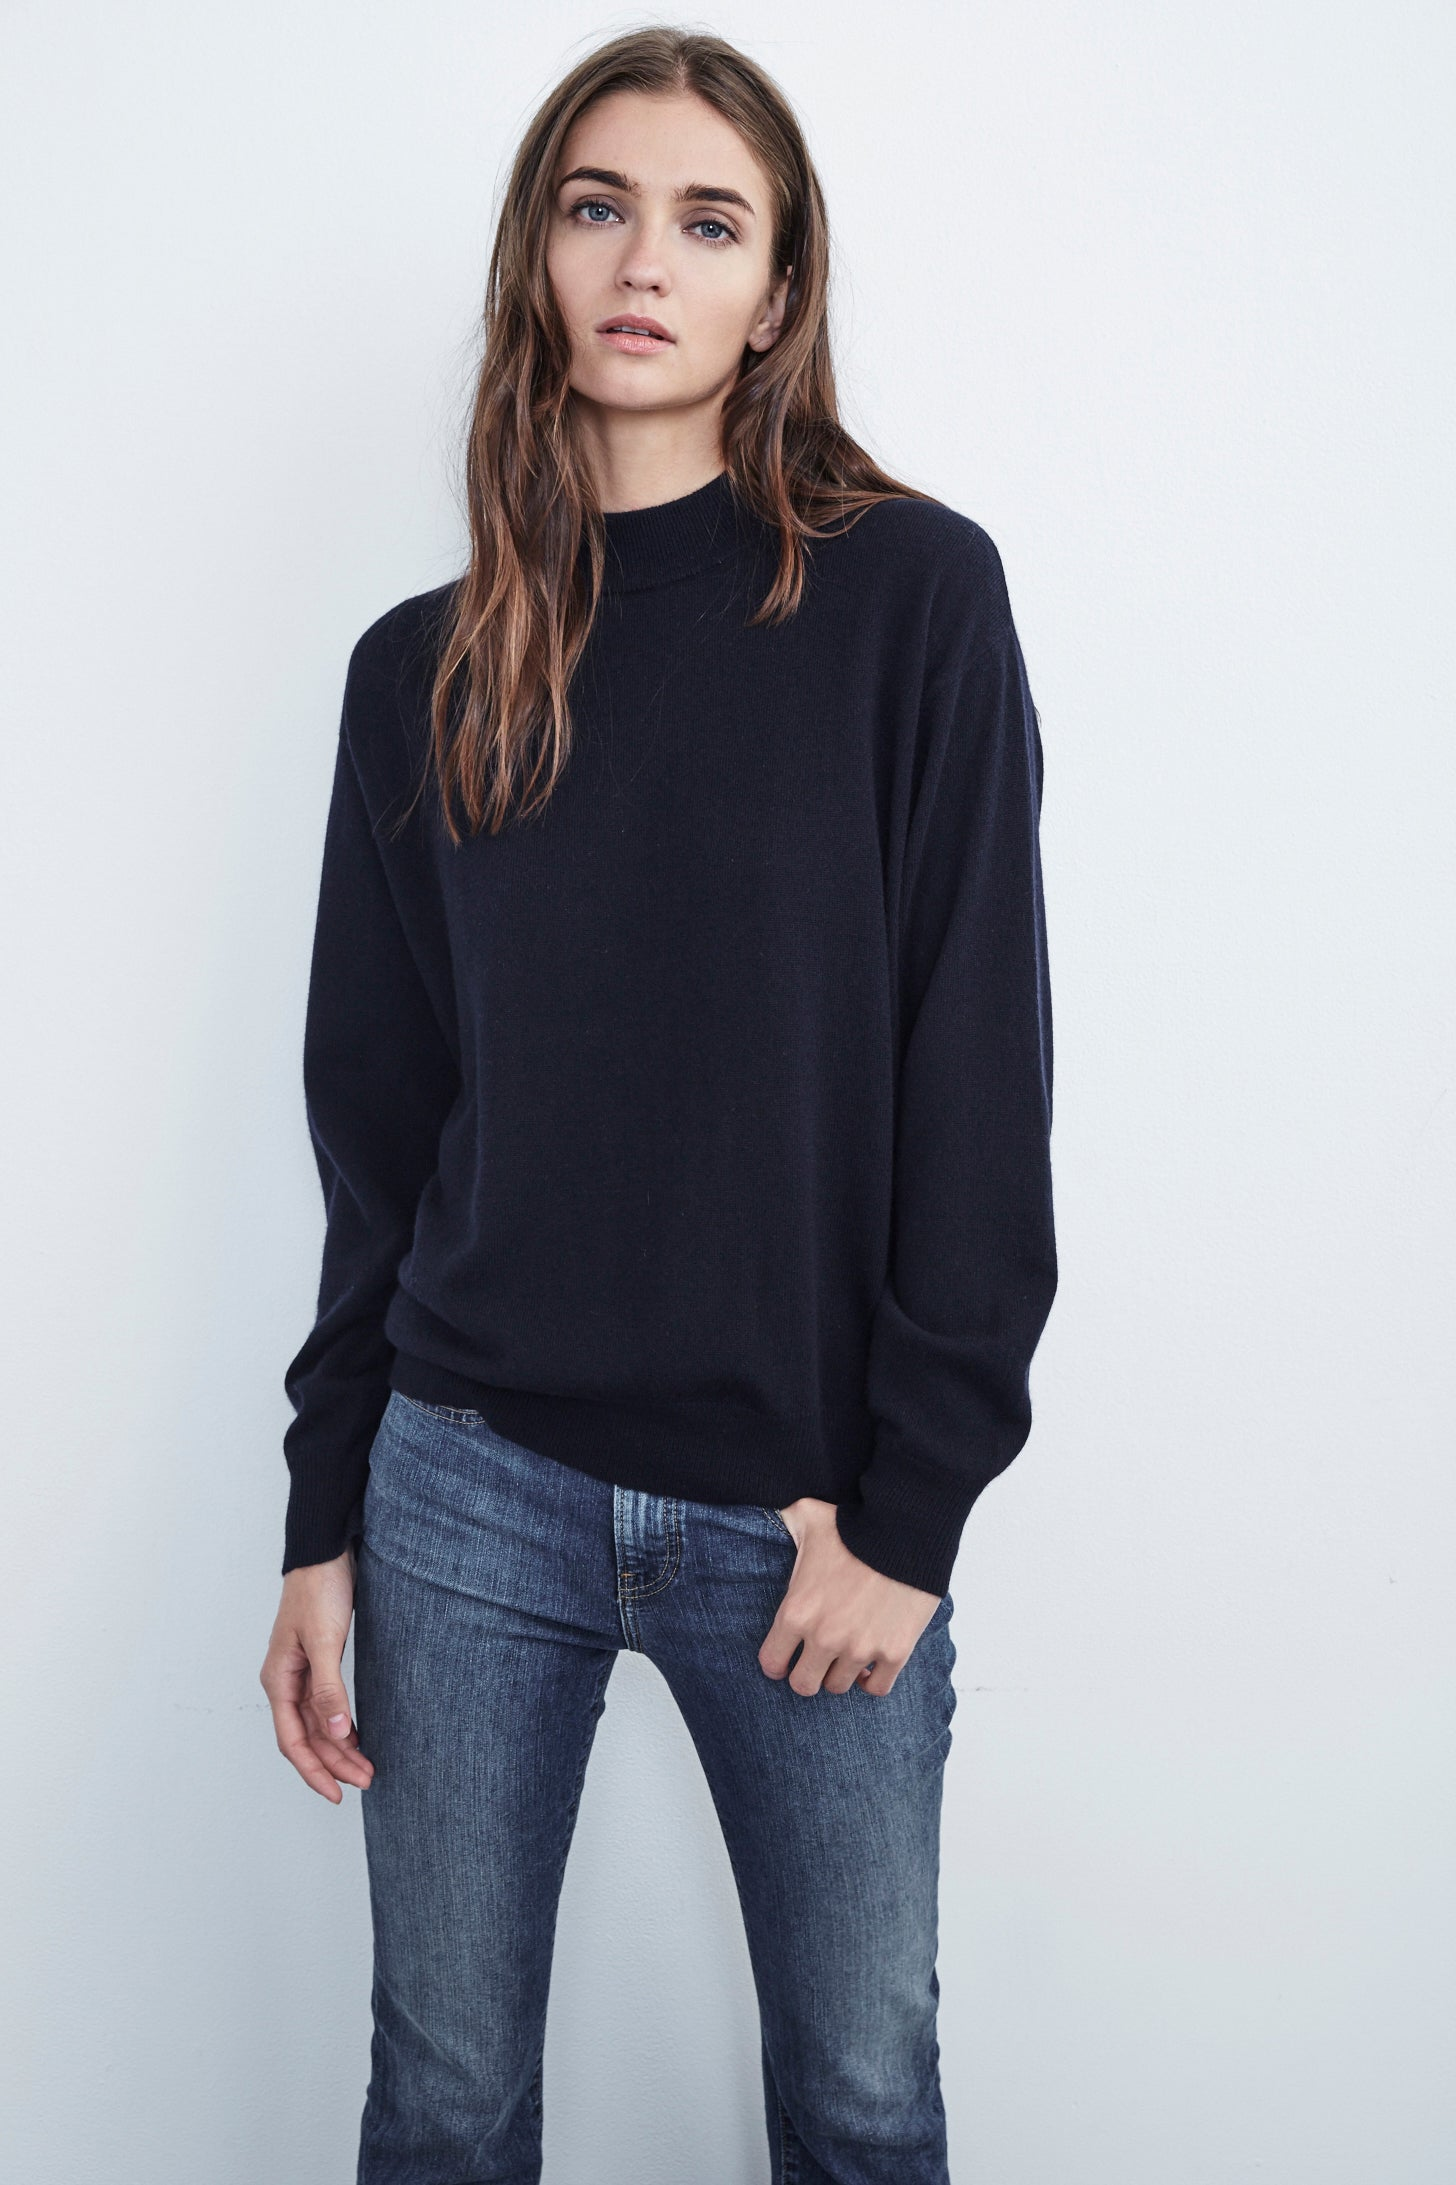 DELILAH CASHMERE MOCK NECK SWEATER IN NAVY